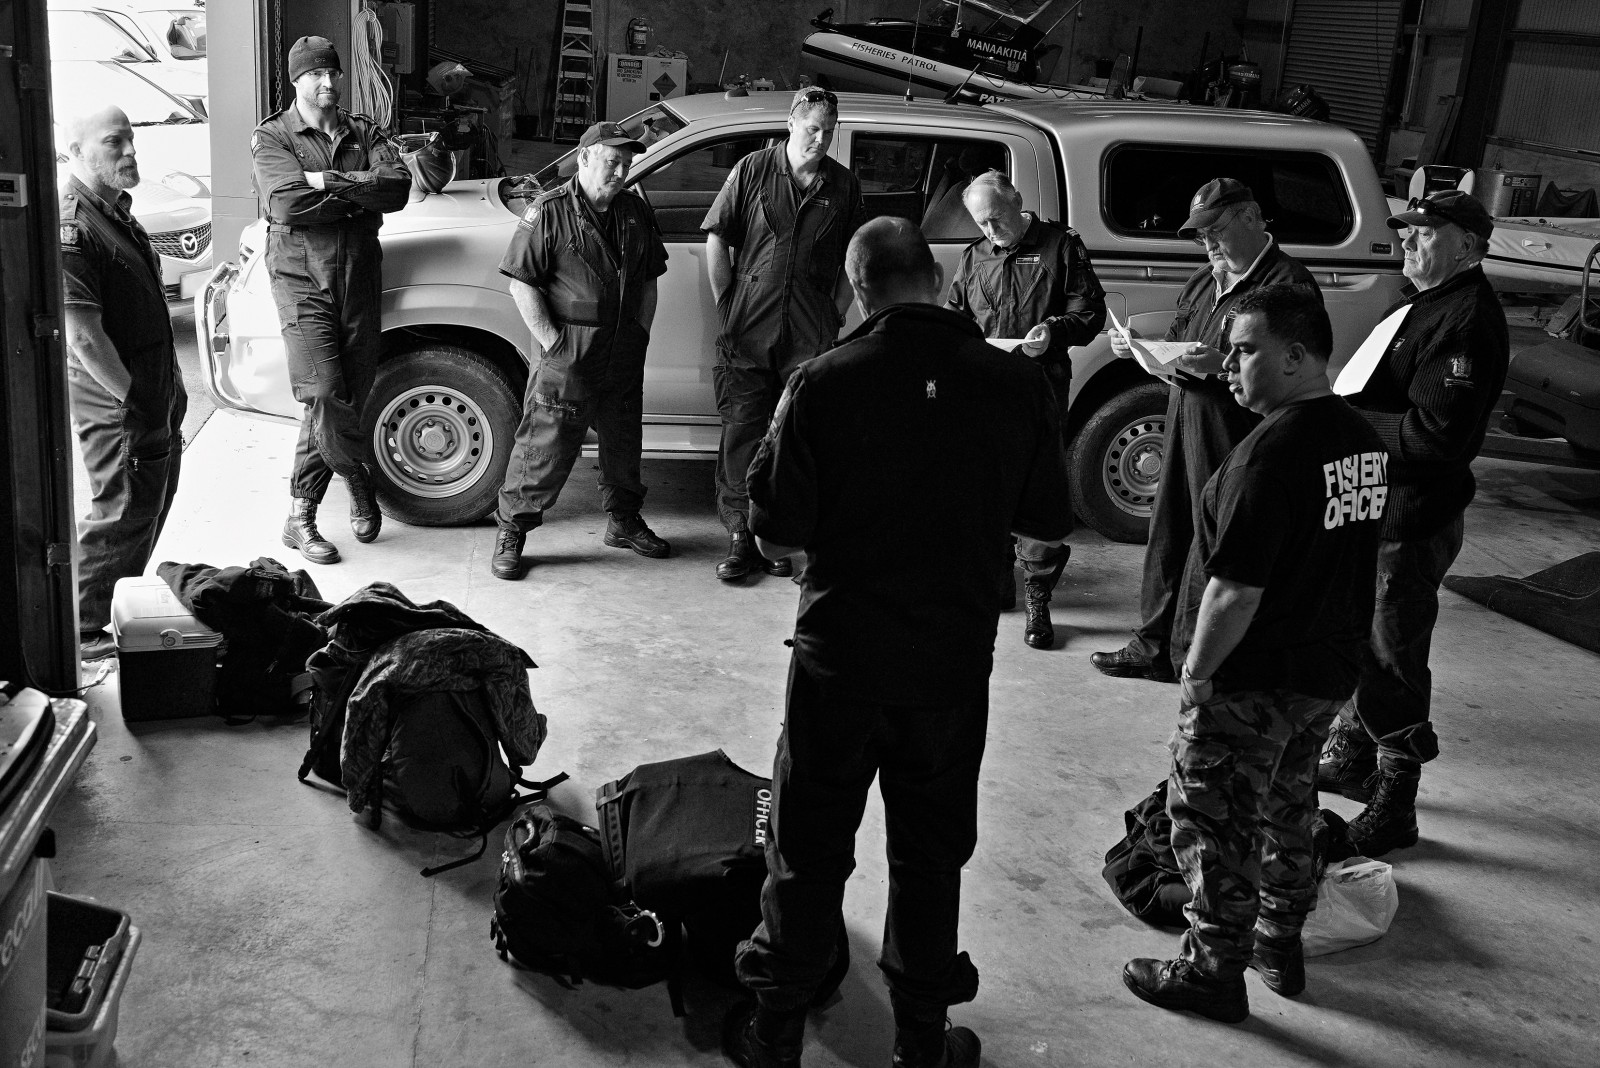 Officers meet for an early- morning briefing in Whangarei, before heading north to Kawerua, south of Hokianga, where they will position themselves along the coastline. There they will hide, with binoculars and remain in radio contact. In its relentless pursuit of poachers, the Ministry for Primary Industries executes regular paua operations up and down the New Zealand coastline. Carefully planned, these stakeouts are top secret and demand a large number of personnel, including voluntary honorary fishery officers.